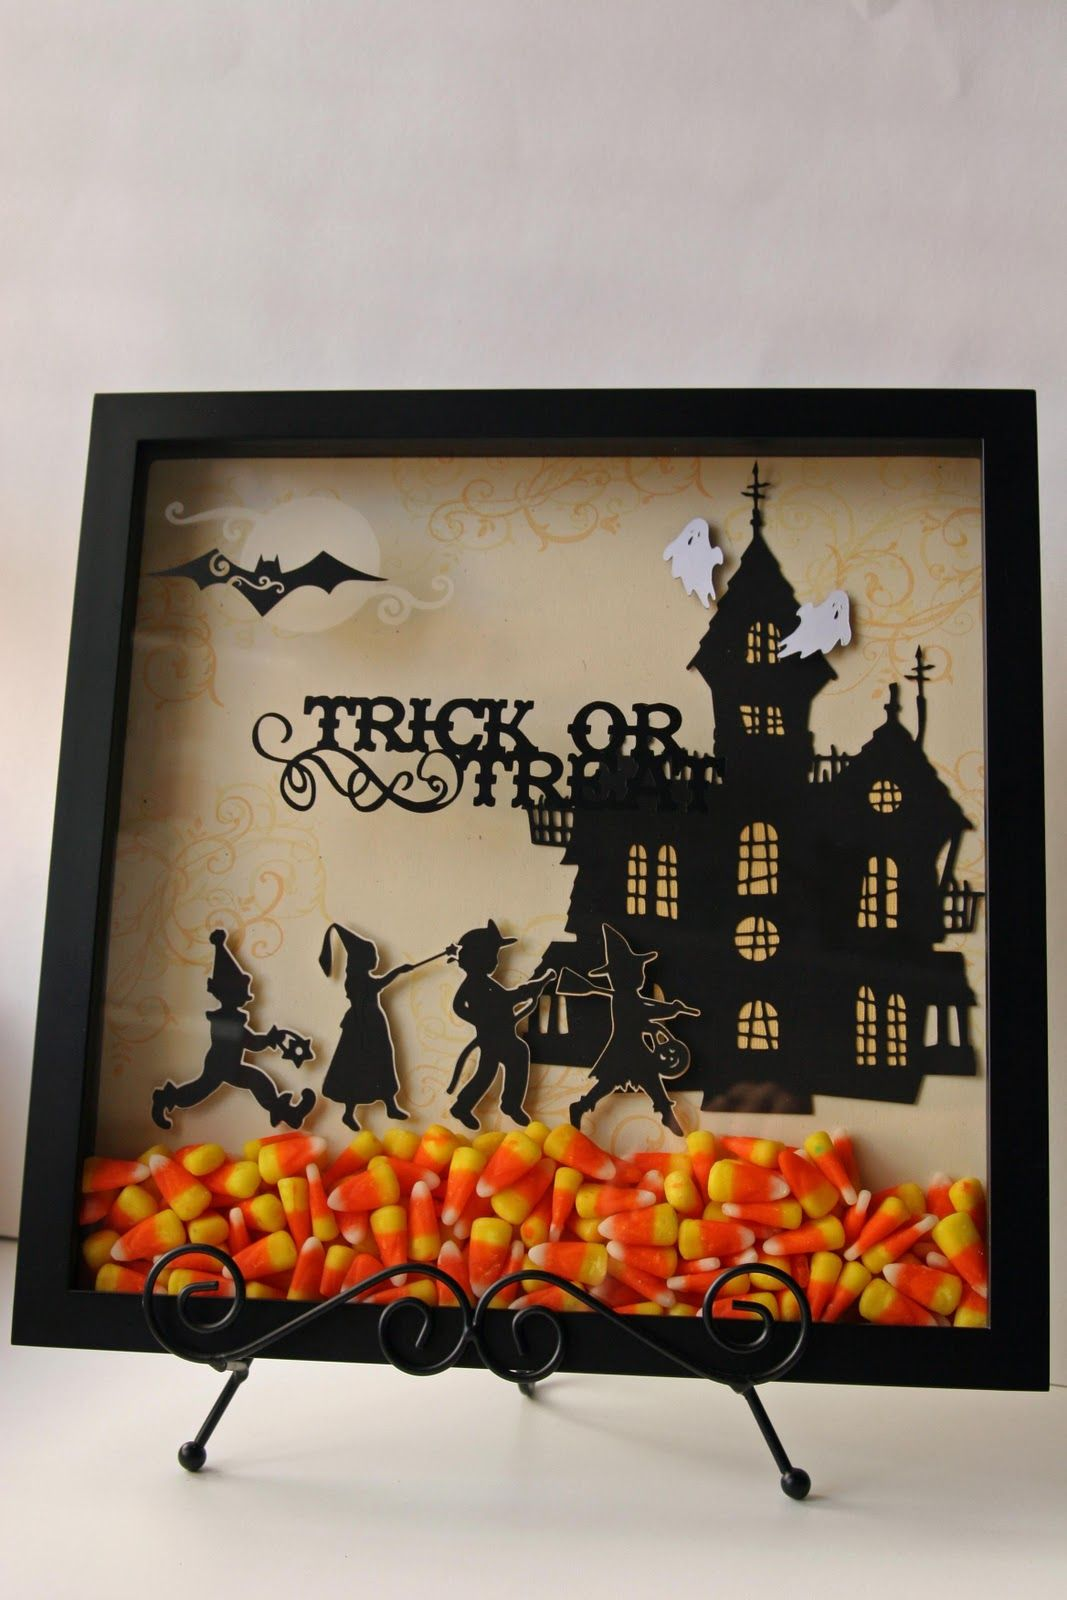 This cute Halloween display was made with a shadow box and a cricut. You could print a scene off the internet or draw your own outline and cut it out of black paper. I love the bright candy corn in the bottom. Great idea to do for any holiday.